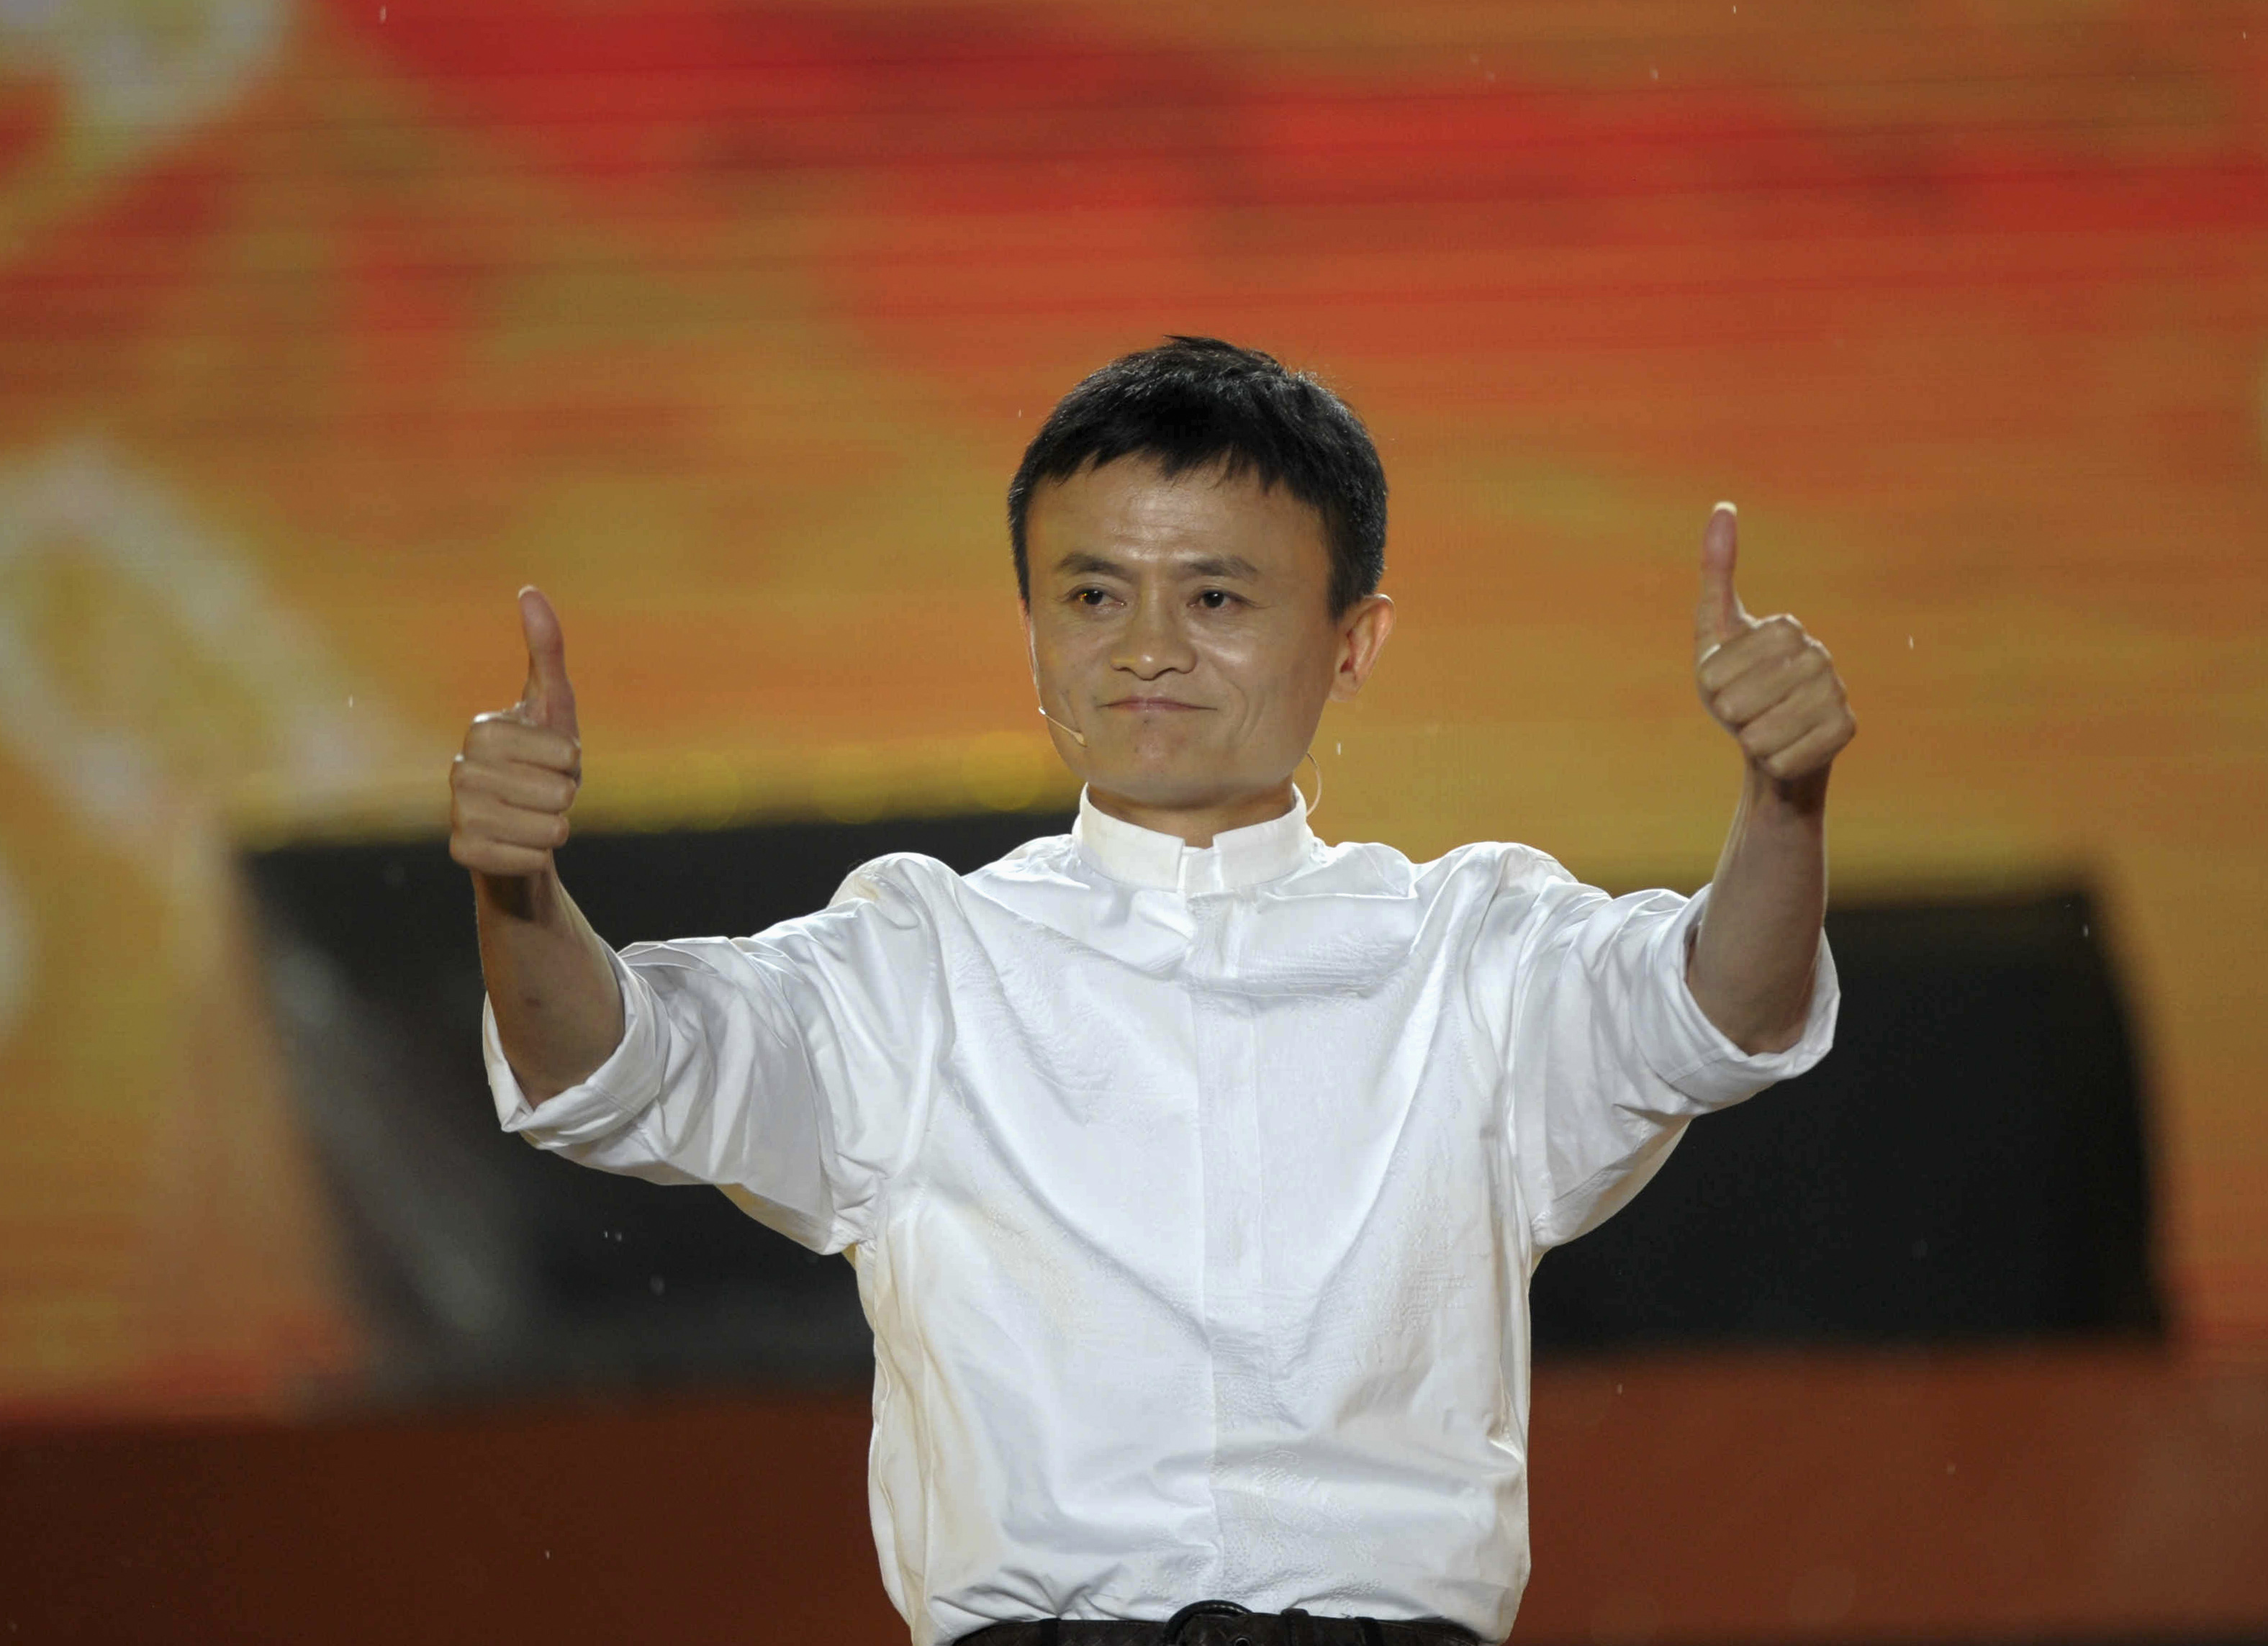 Alibaba founder Jack Ma gestures during a celebration of the 10th anniversary of Taobao Marketplace, China's largest consumer-focused e-commerce website, in Hangzhou, May 10, 2013.